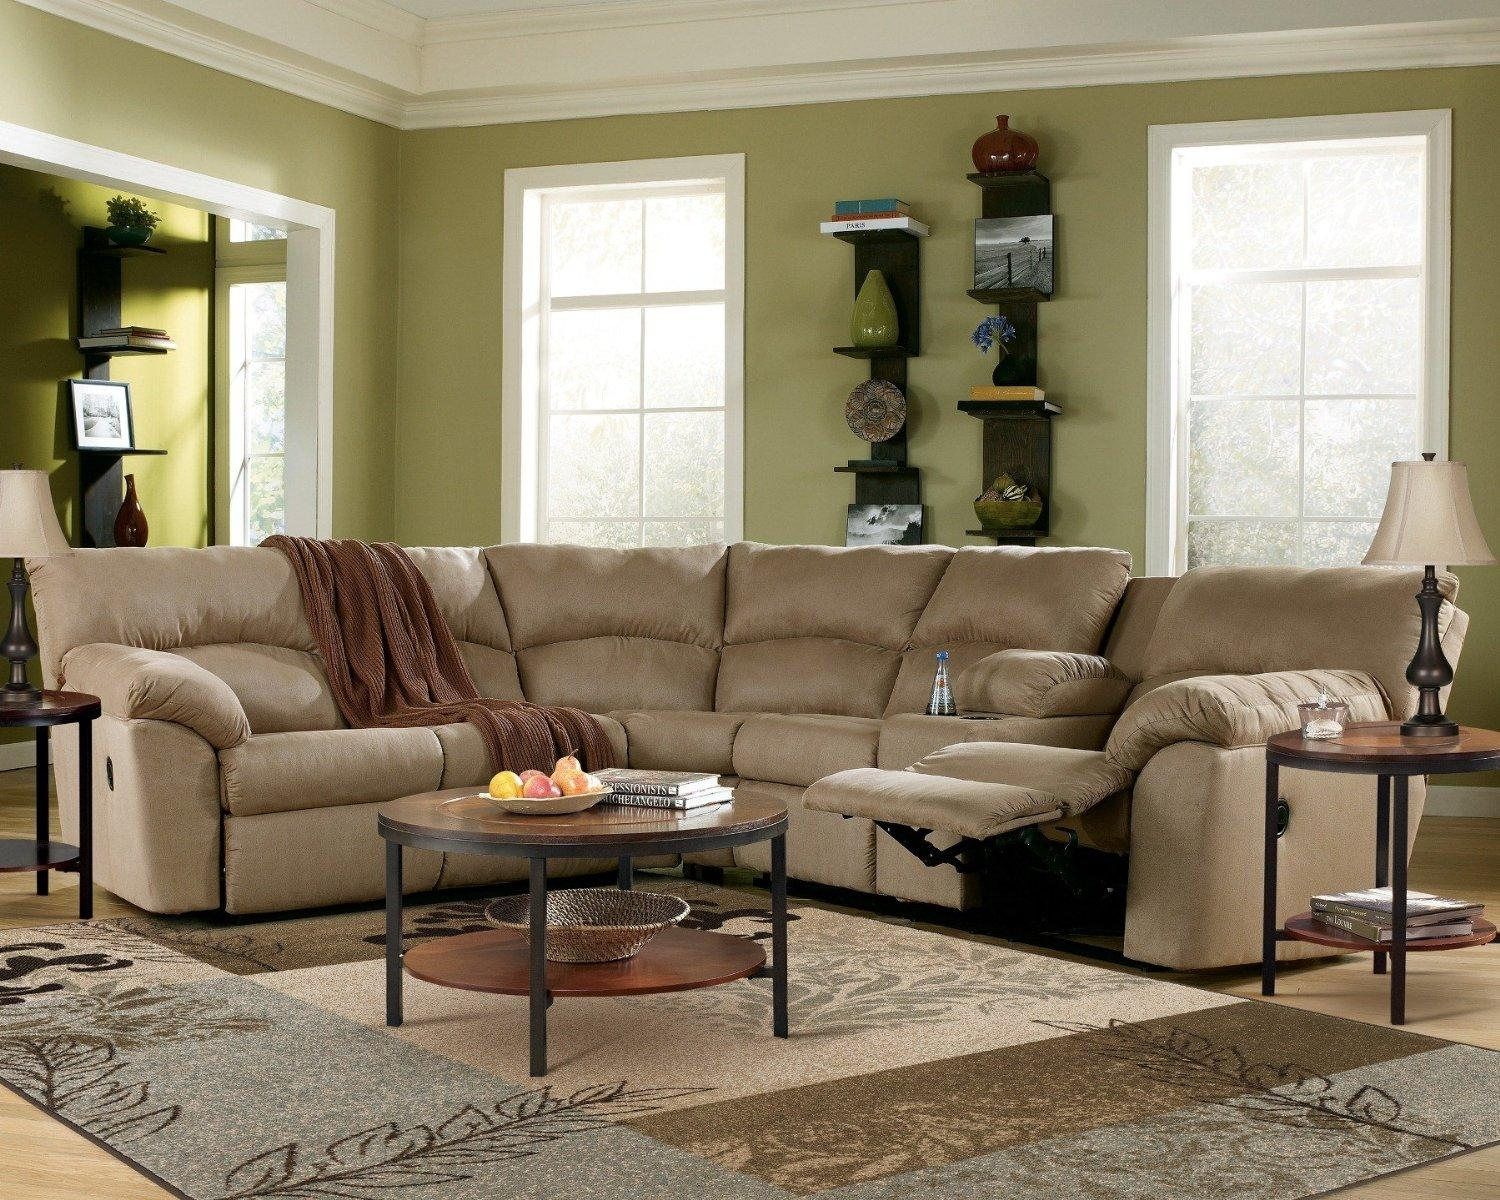 Sectional Sofas With Recliners Cheap | Tehranmix Decoration Within Curved Sectional Sofas With Recliner (Image 13 of 20)